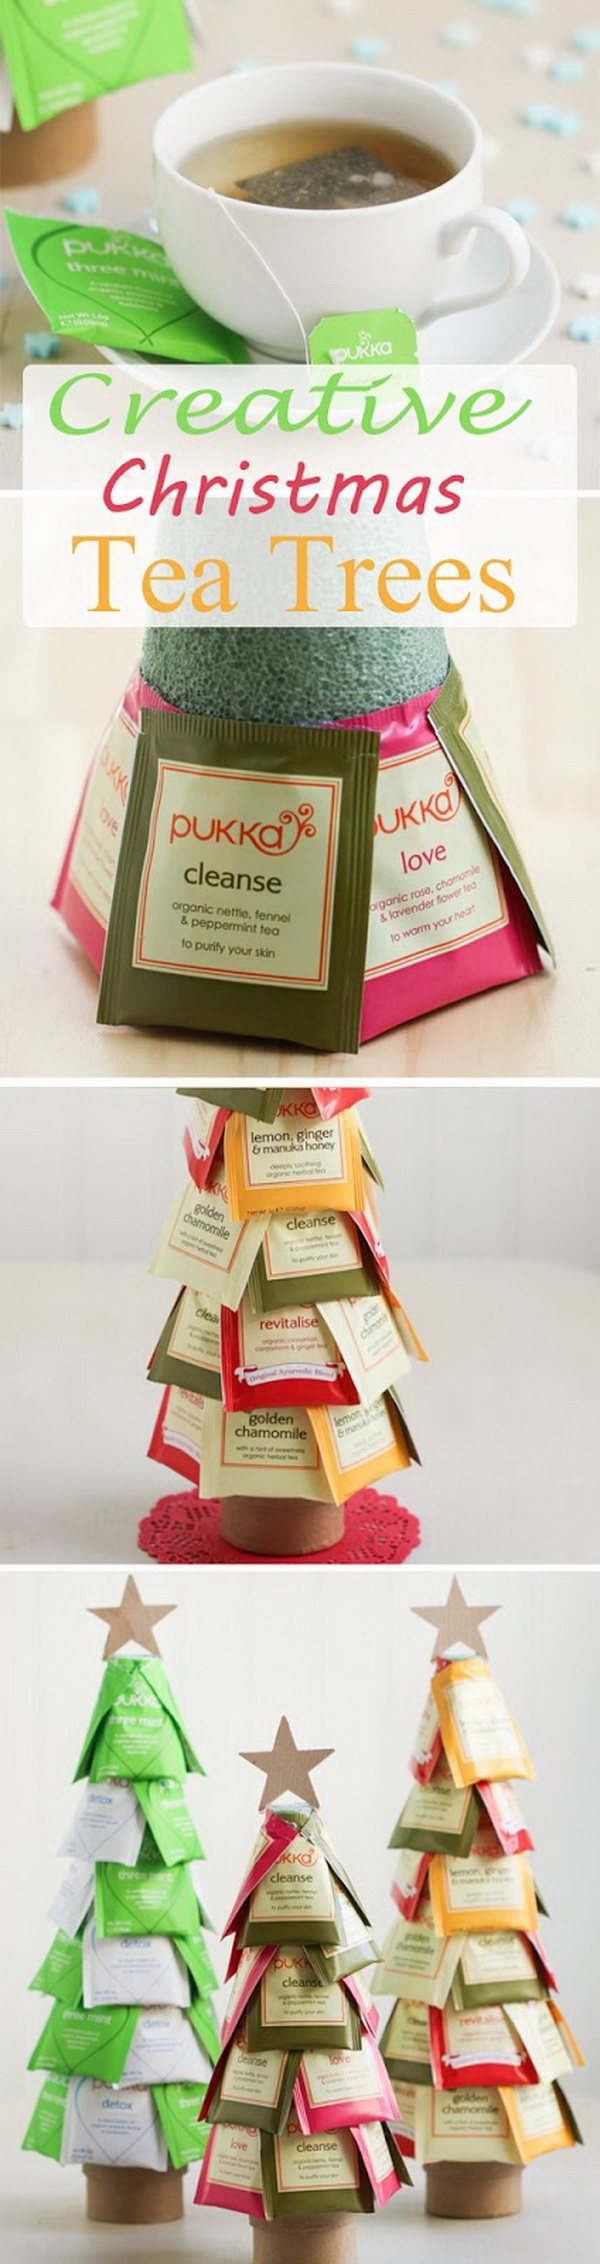 Creative Christmas Tea Trees. This Christmas tee tree makes a super sweet and easy handmade gift idea for those tea lovers in your life.